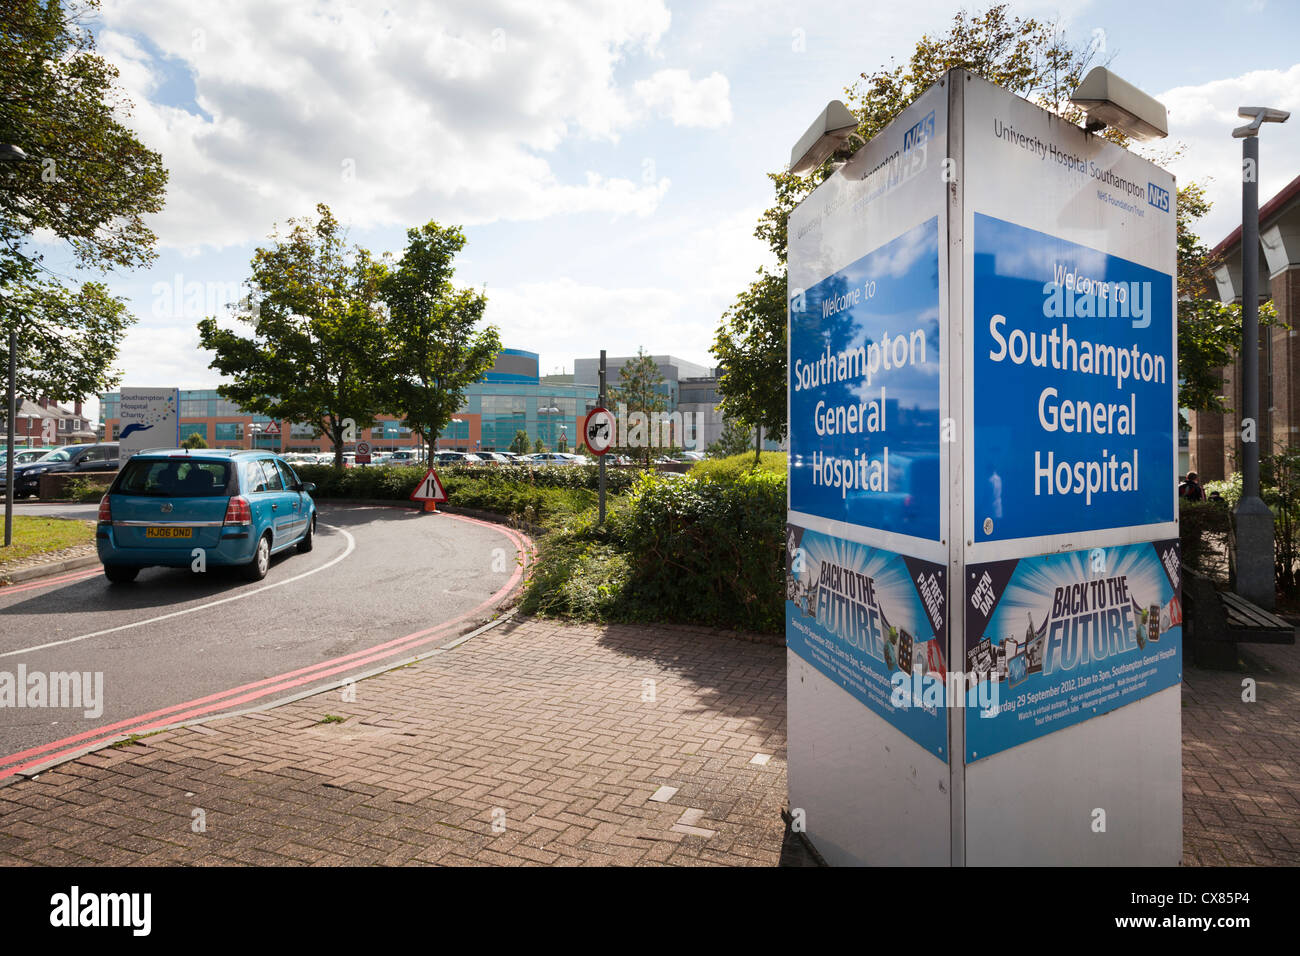 entrance to visitor car park of Southampton General Hospital with sign - Stock Image